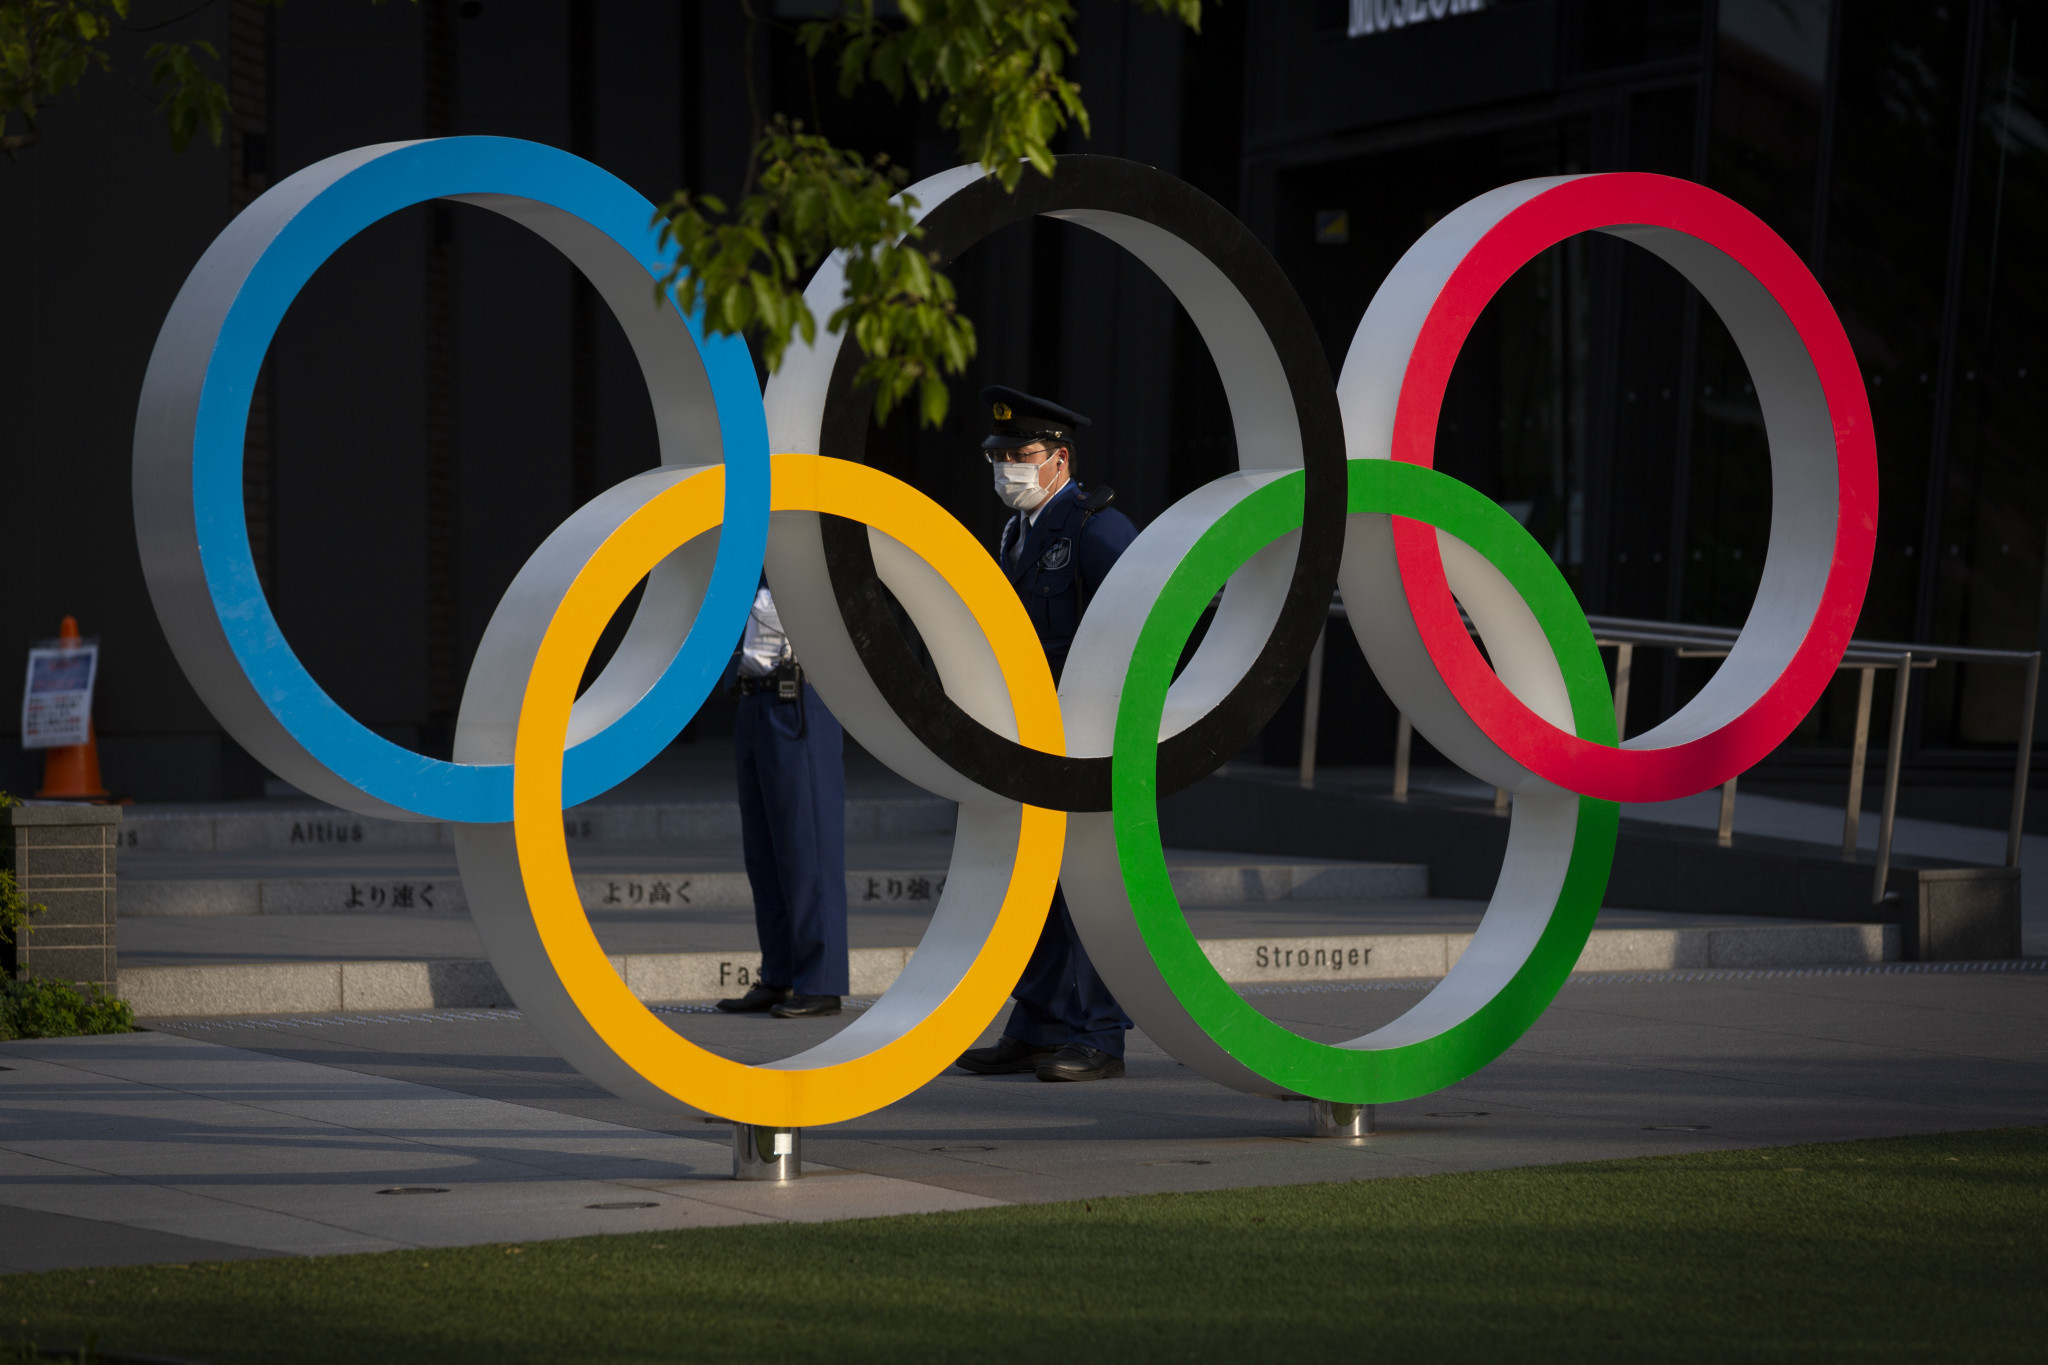 Tokyo 2020 may change the Olympics more profoundly than any of us realised, according to our columnist ©Getty Images